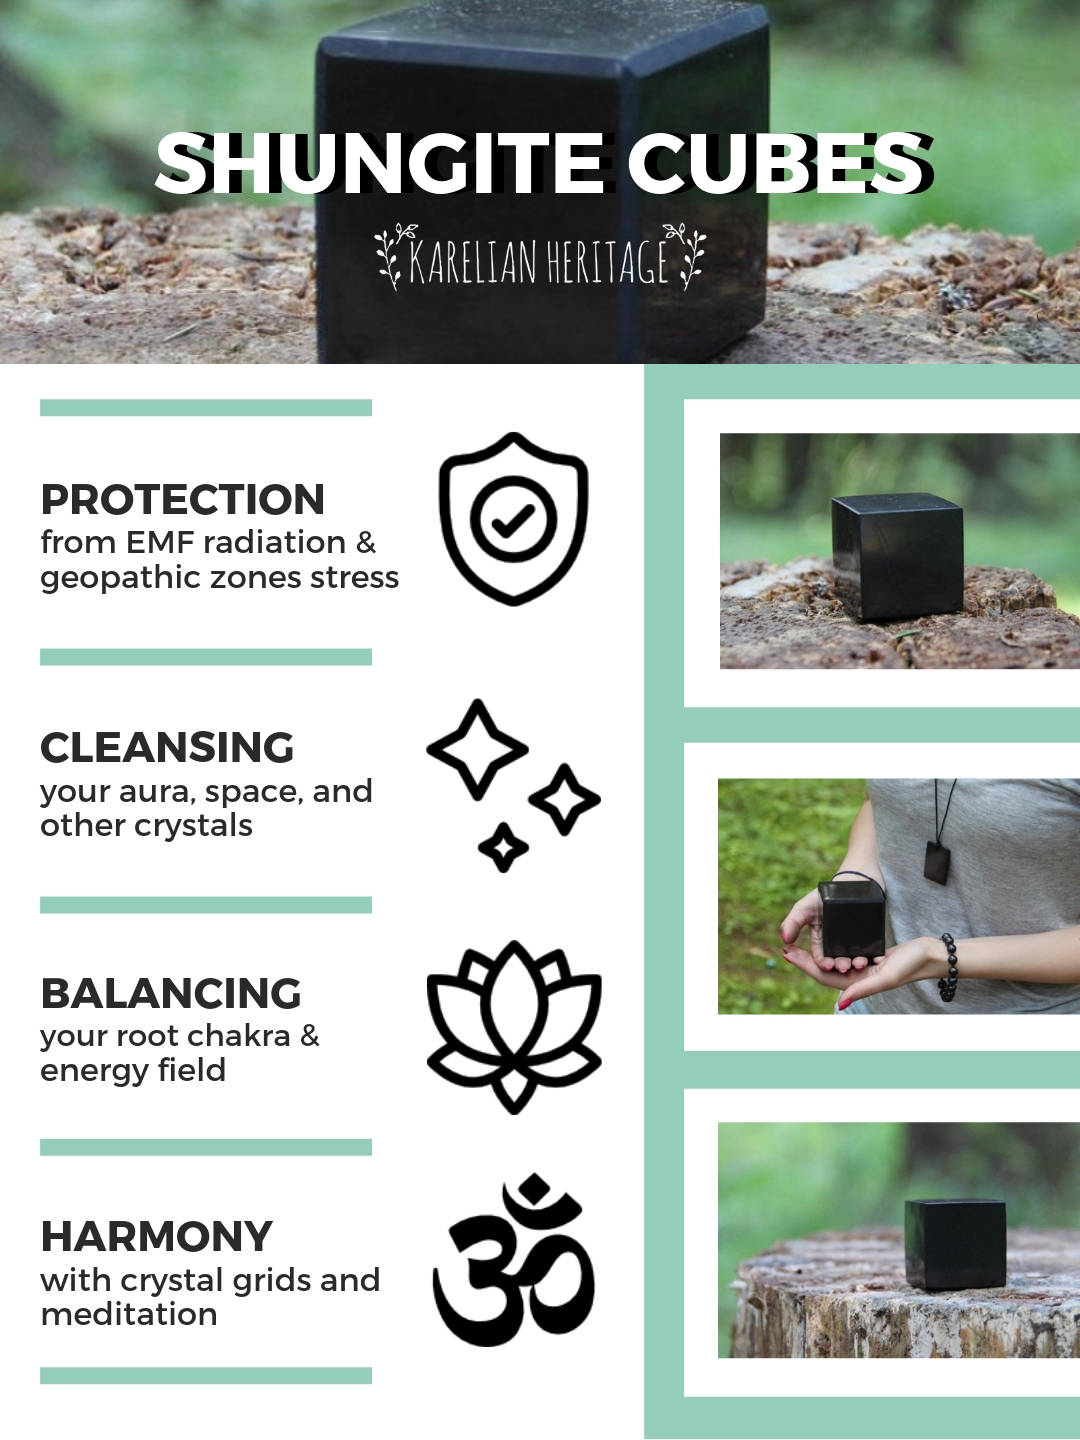 shungite-cubes-for-emf-protection